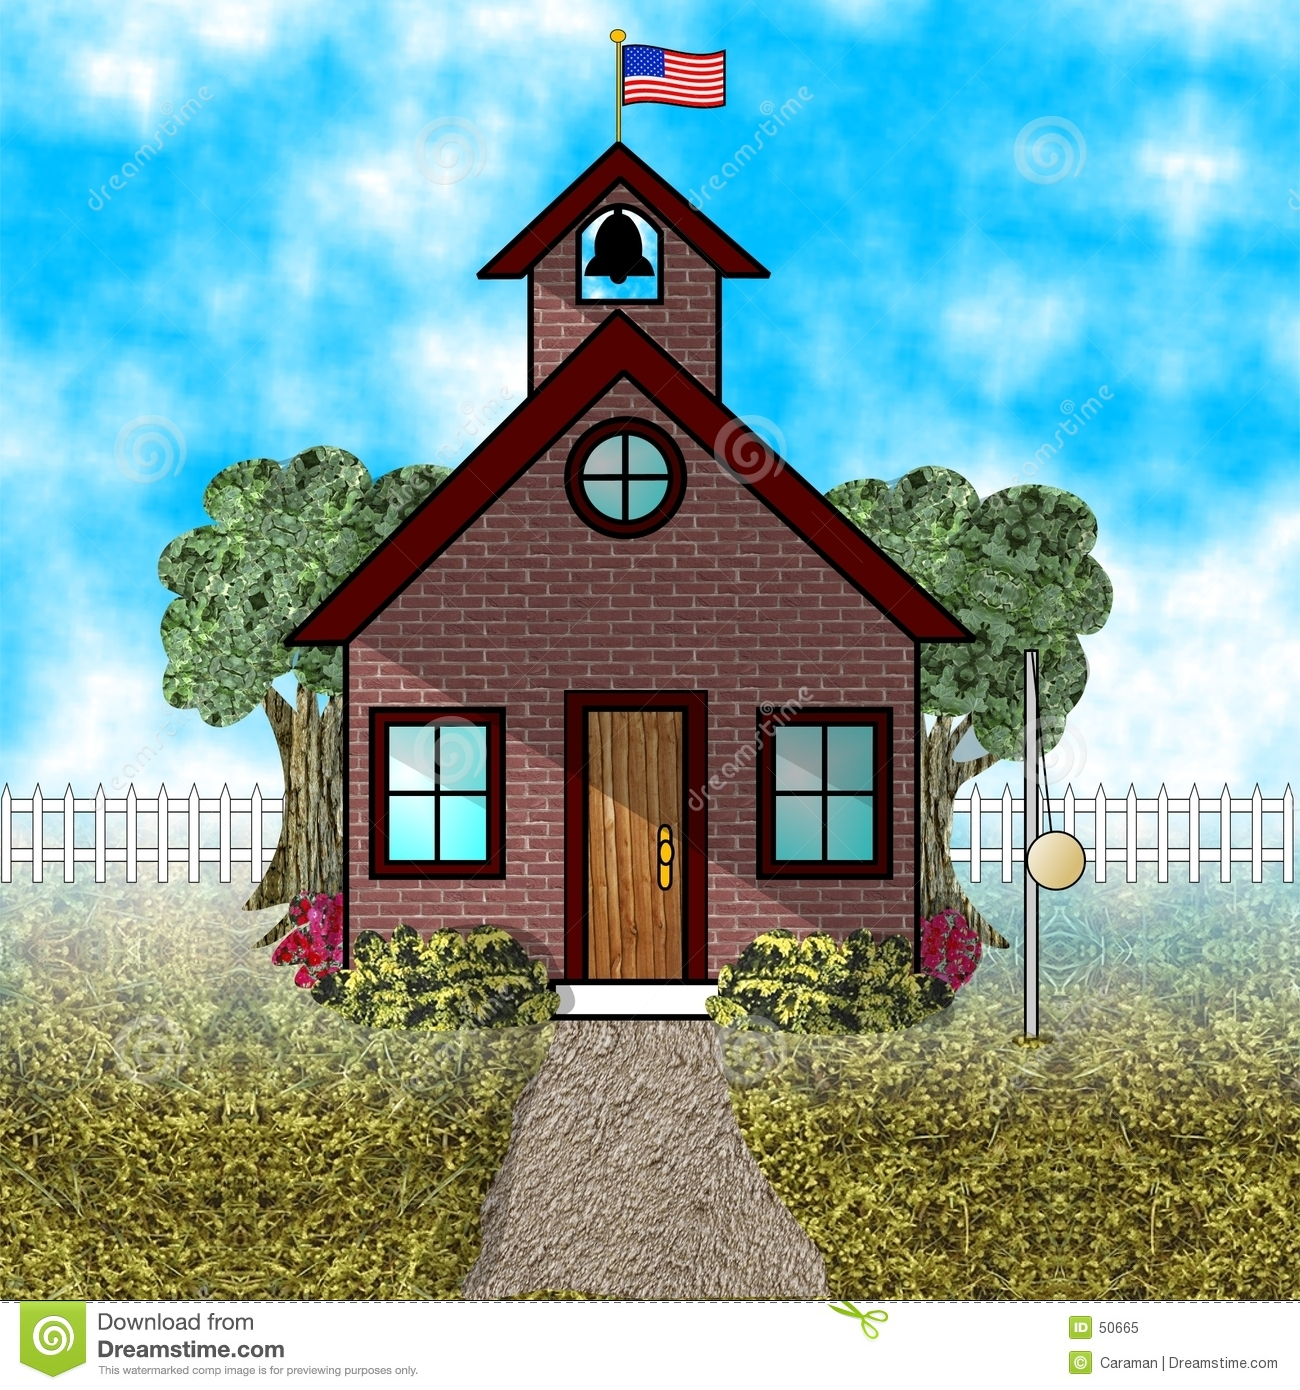 old fashioned schoolhouse royalty free stock photo - image: 50665